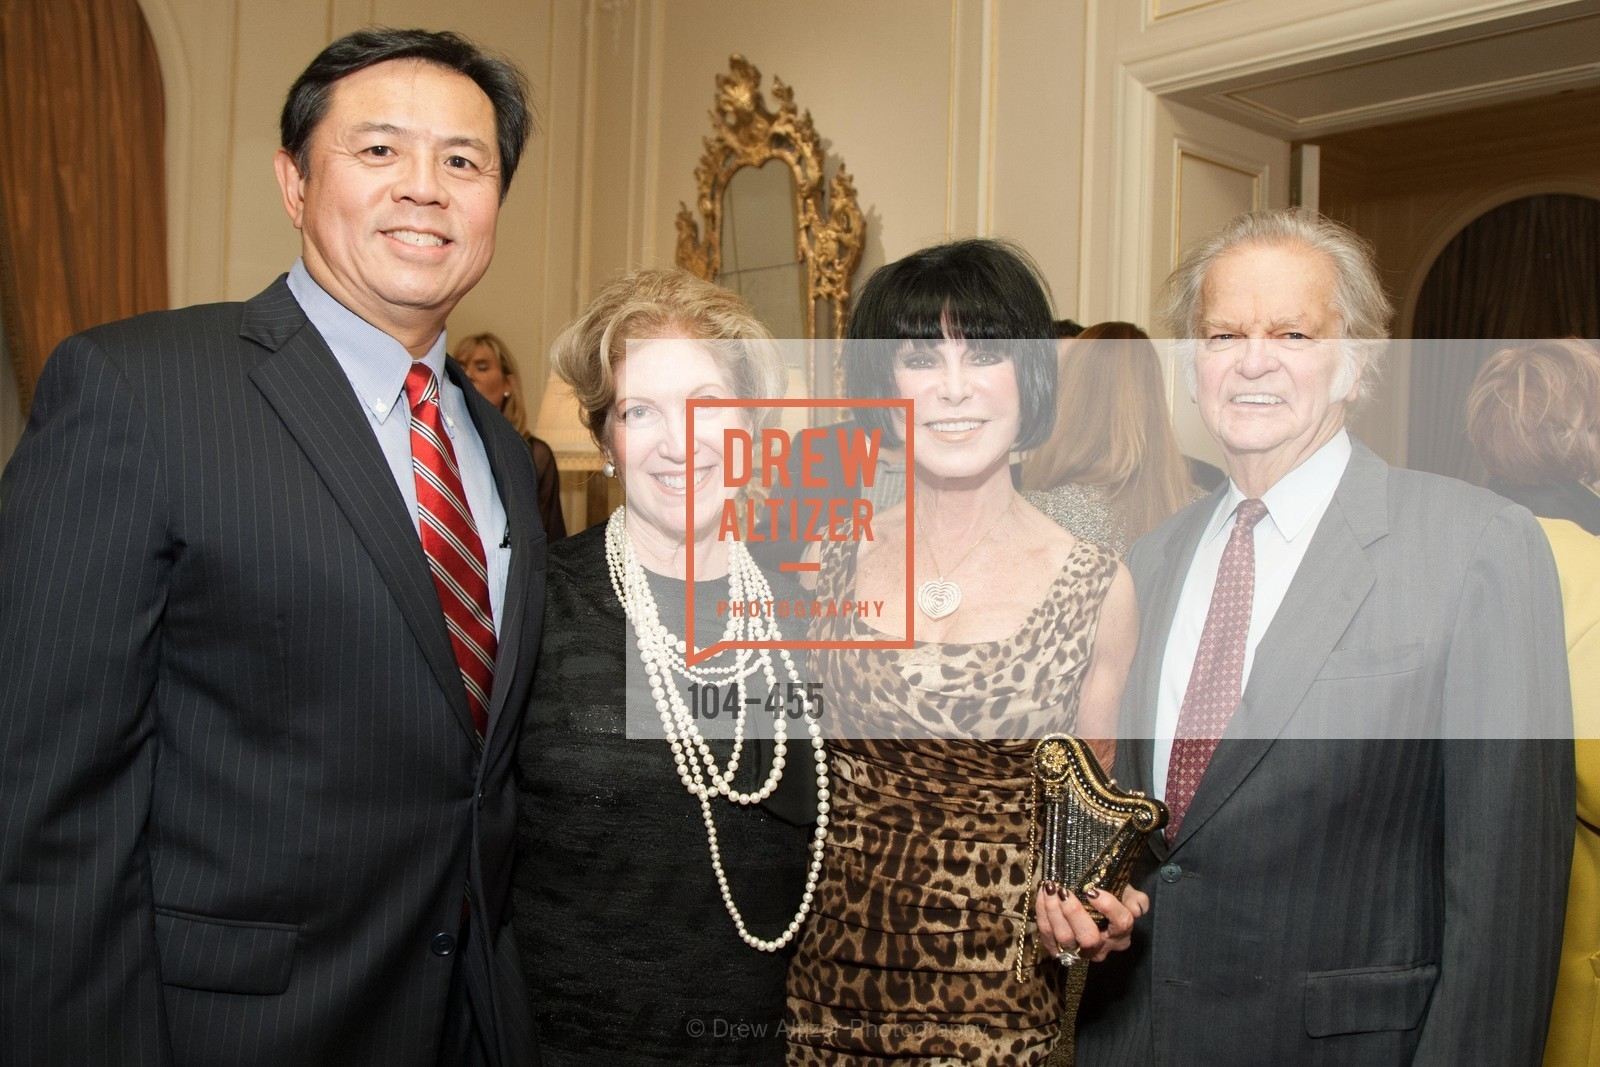 Darryl Woo, Celeste Woo, Marilyn Cabak, Michael Cabak, SAN FRANCISCO BALLET Grand Benefactors Reception, US. US, January 8th, 2014,Drew Altizer, Drew Altizer Photography, full-service agency, private events, San Francisco photographer, photographer california